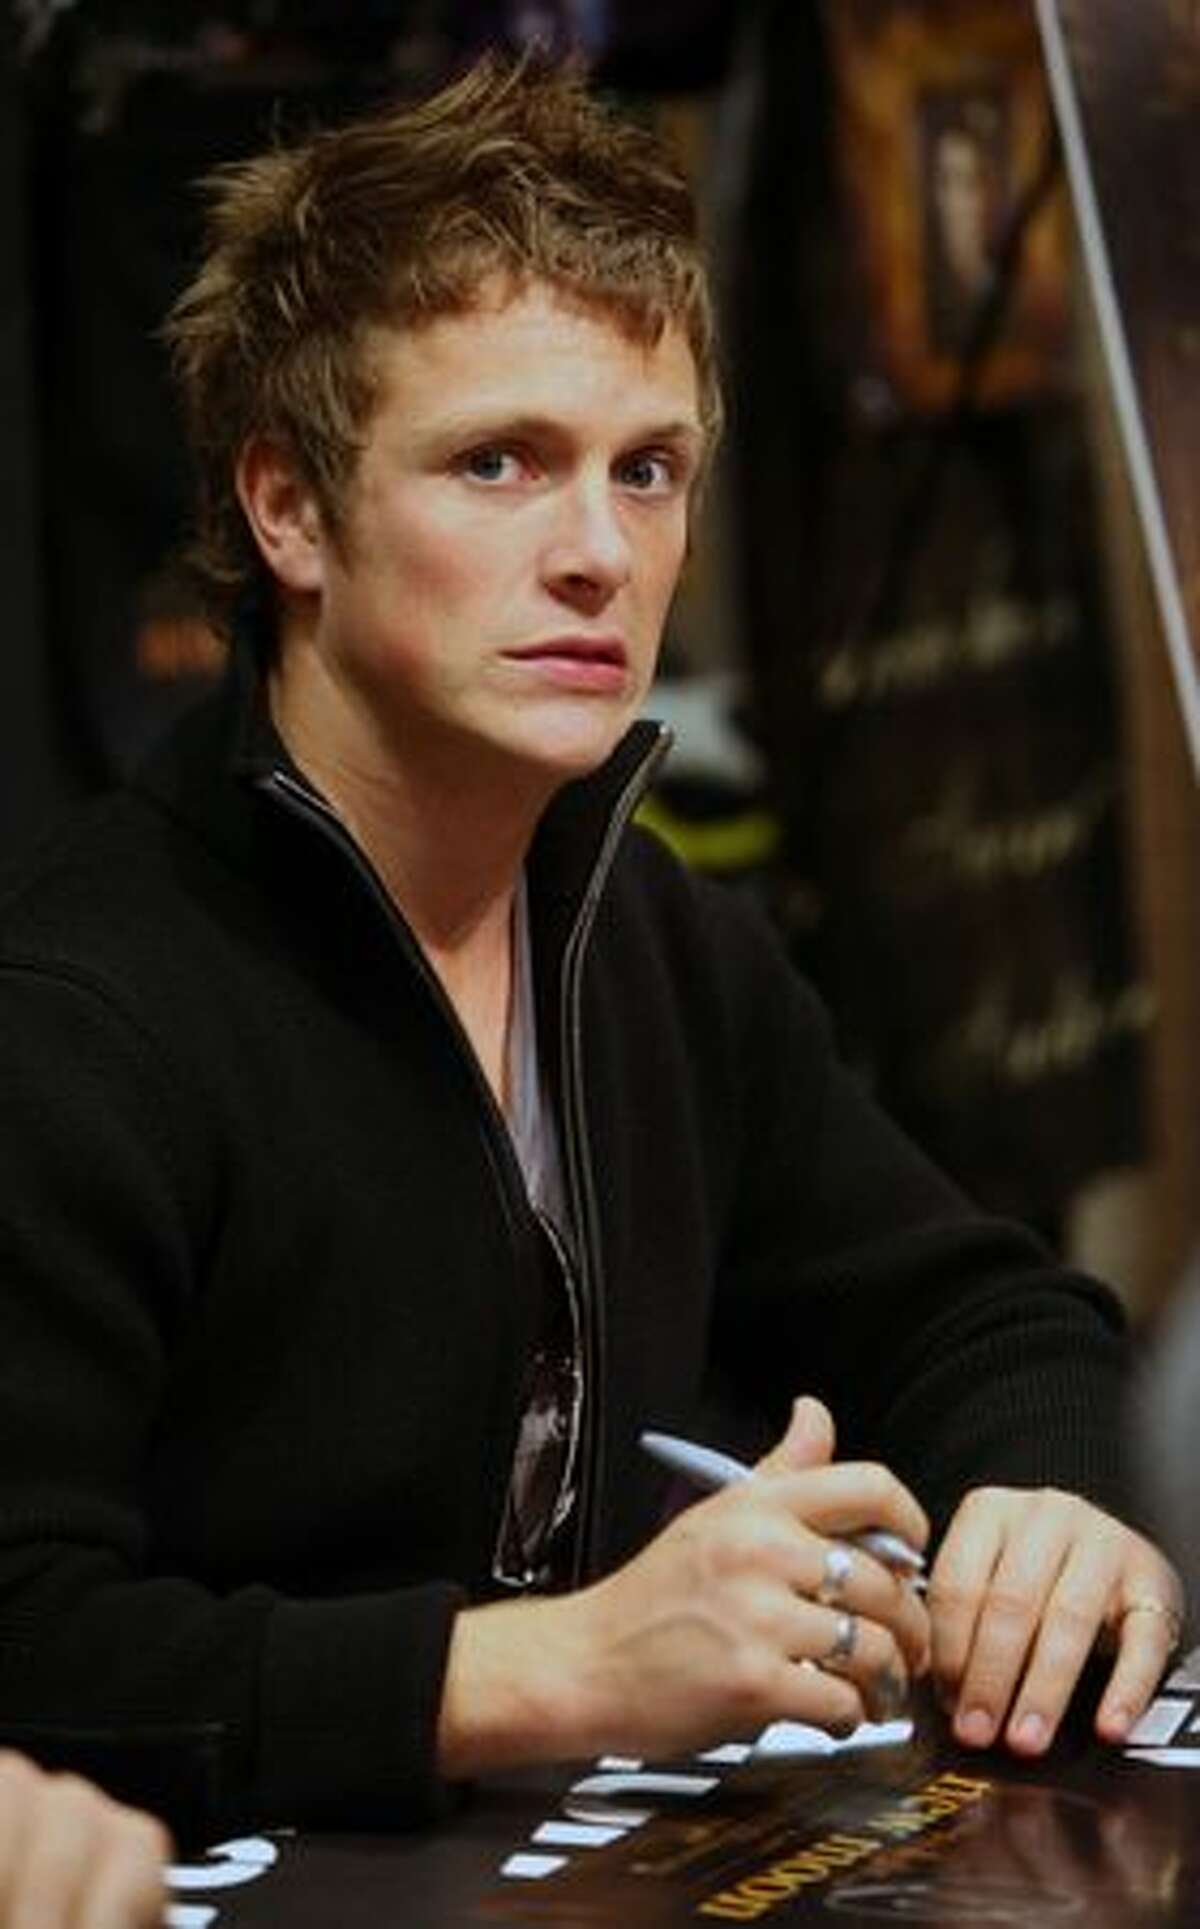 """Charlie Bewley, who plays the vampire Demetri, will be appearing in his first film role in """"The Twilight Saga: New Moon,"""" according to IMDB.com."""